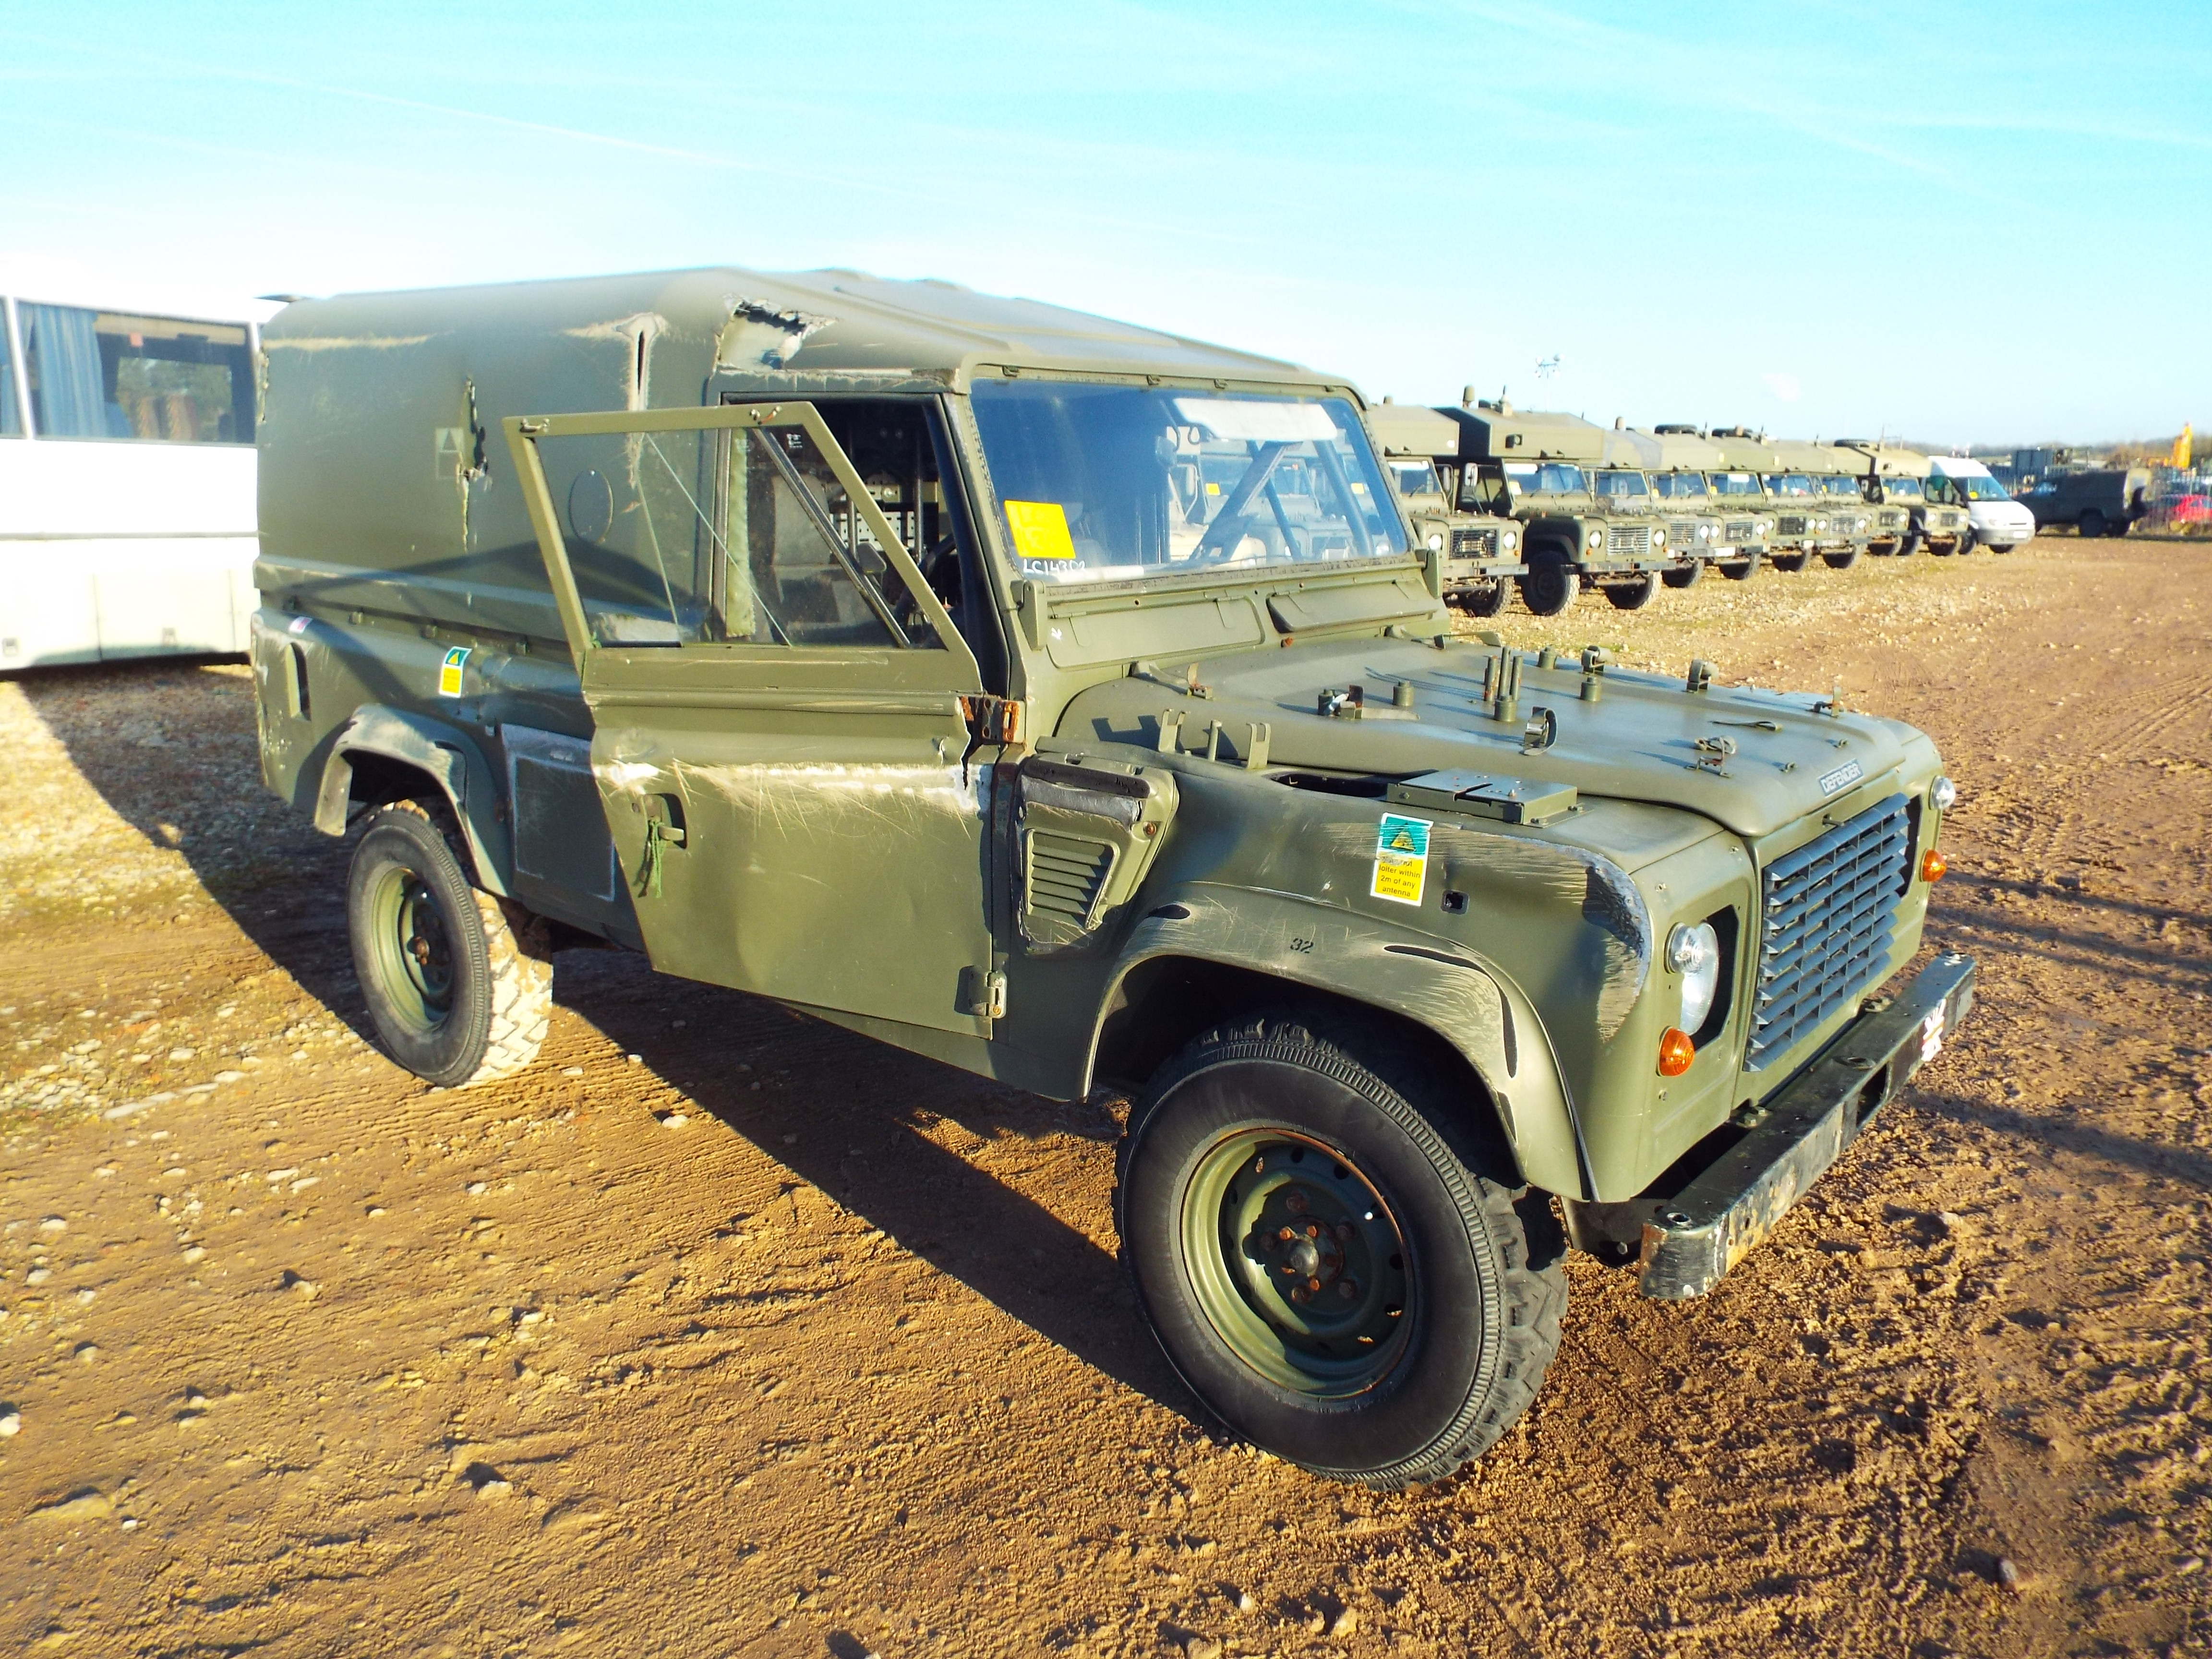 Lot 13598 - Military Specification Land Rover Wolf 110 Hard Top